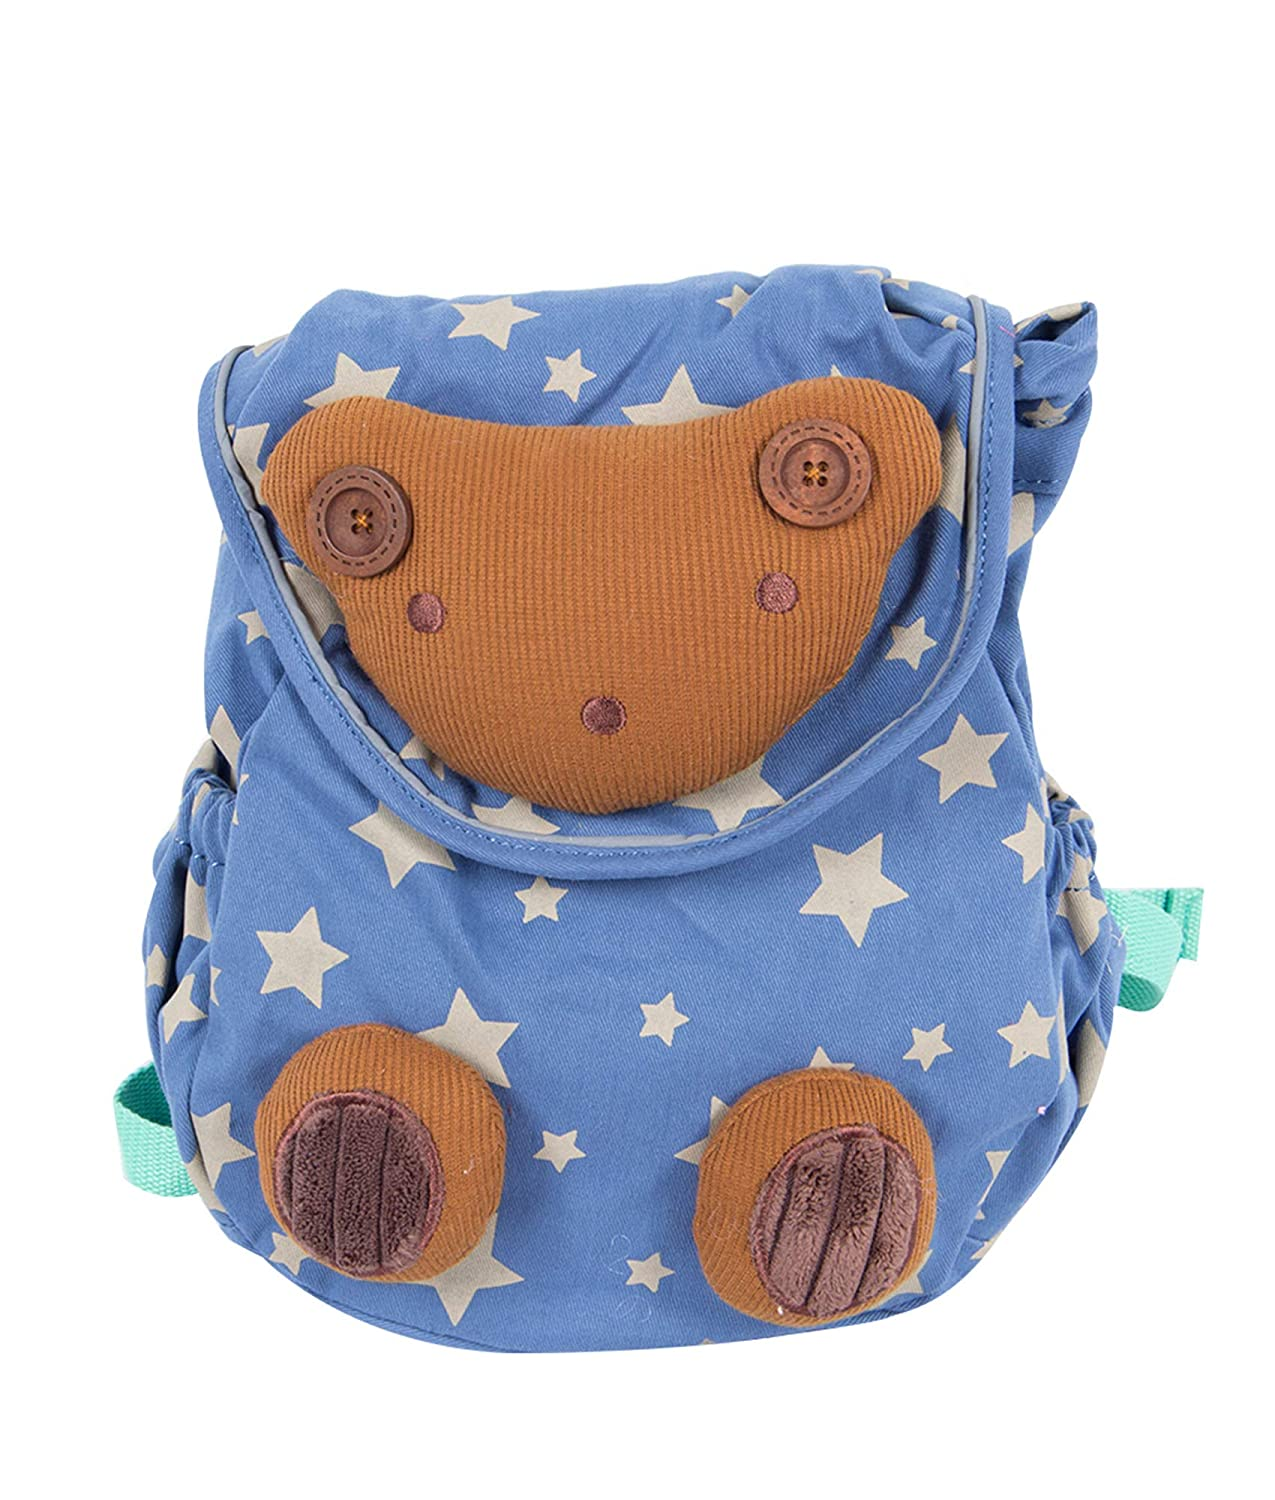 4ebd85d397fc Labebe Baby Bag with Anti-Lost Belt Harness